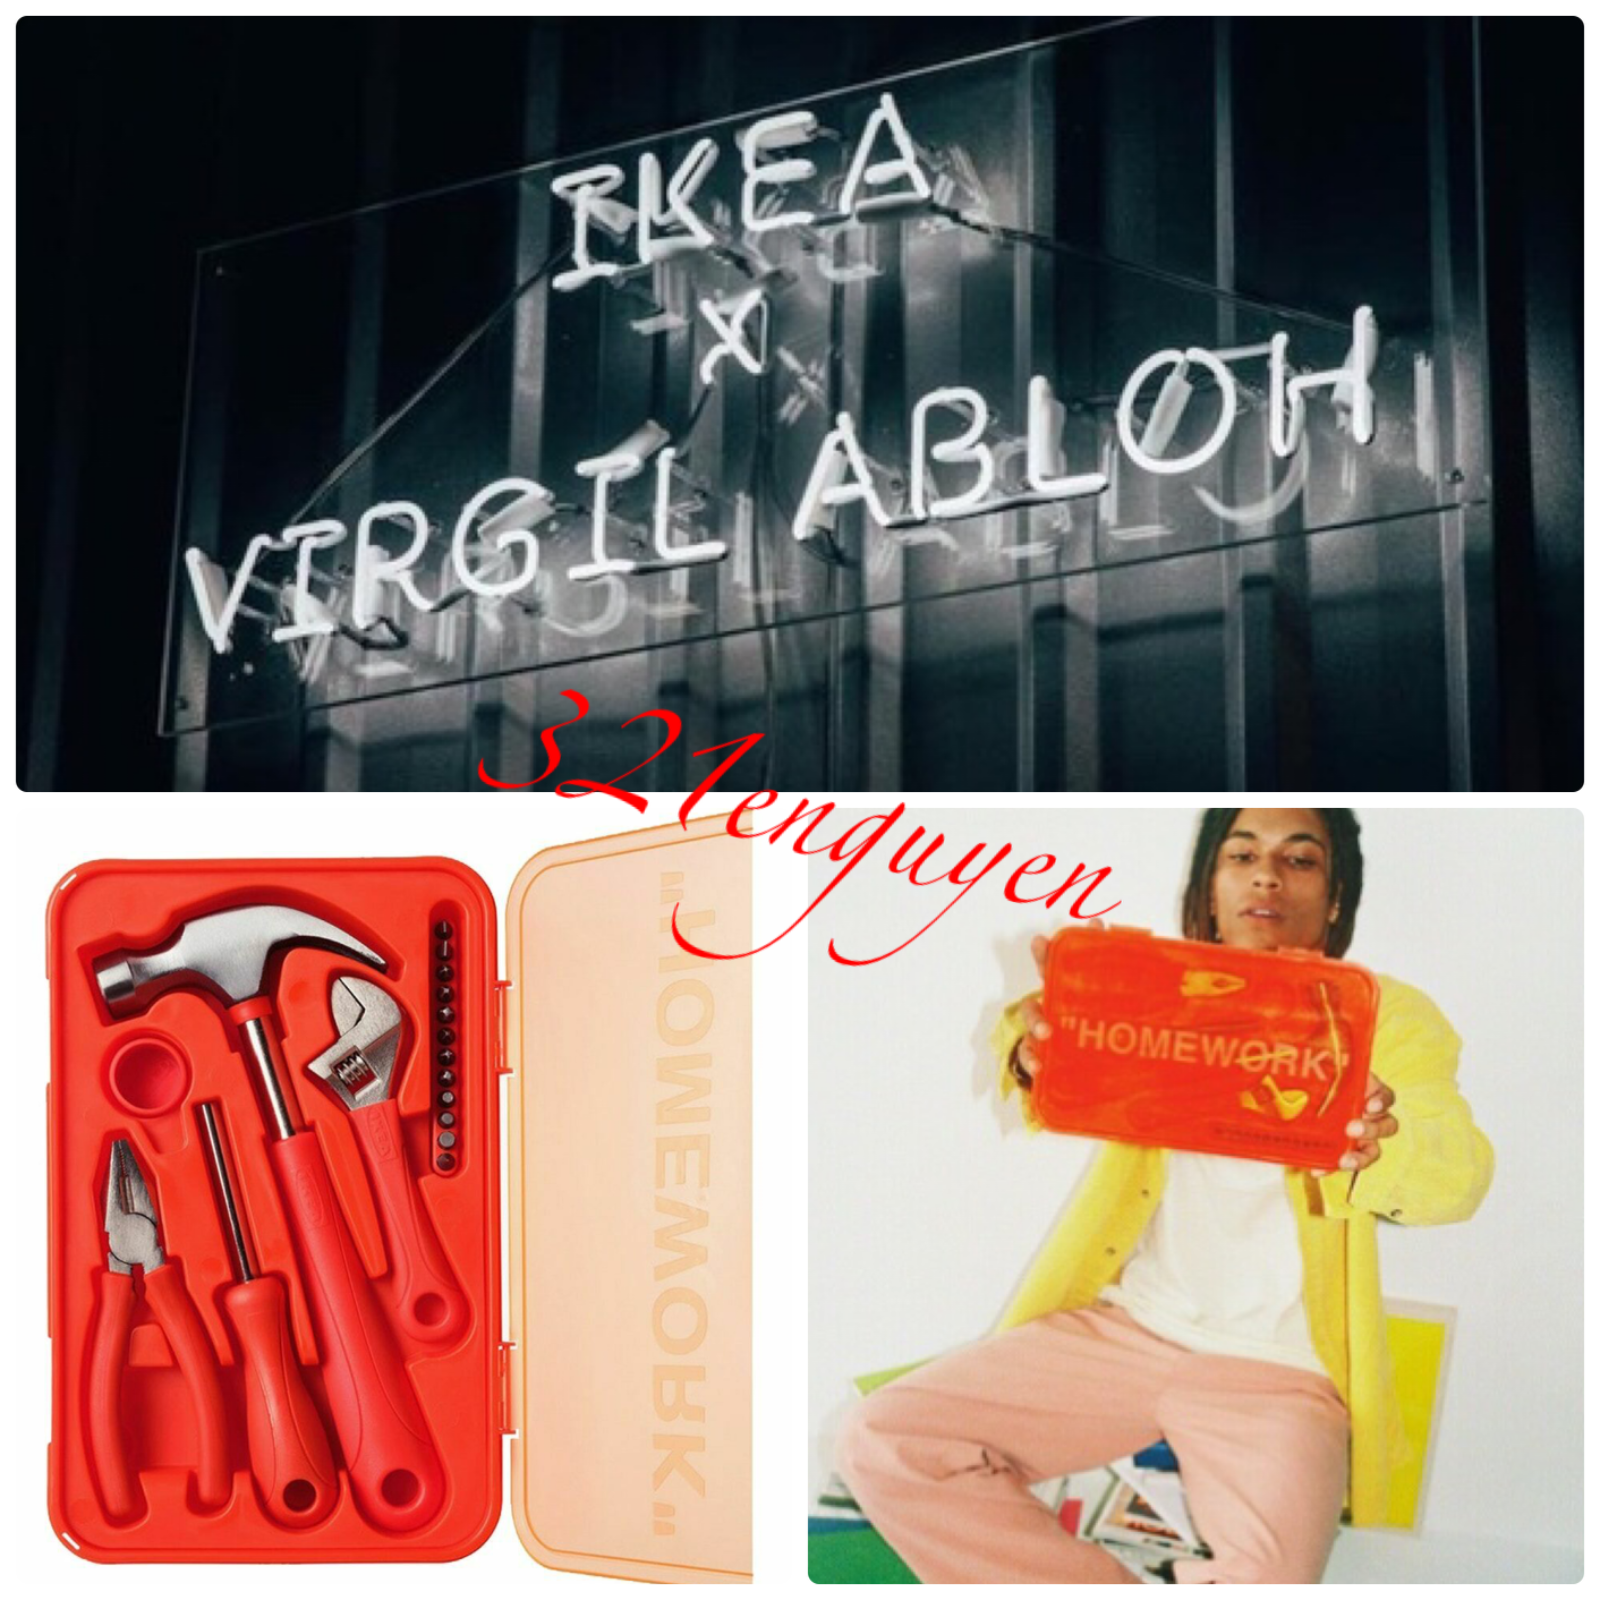 NEW Ikea X Off White Virgil Abloh MARKERAD Tool Kit Box /'Homework/' SOLD OUT